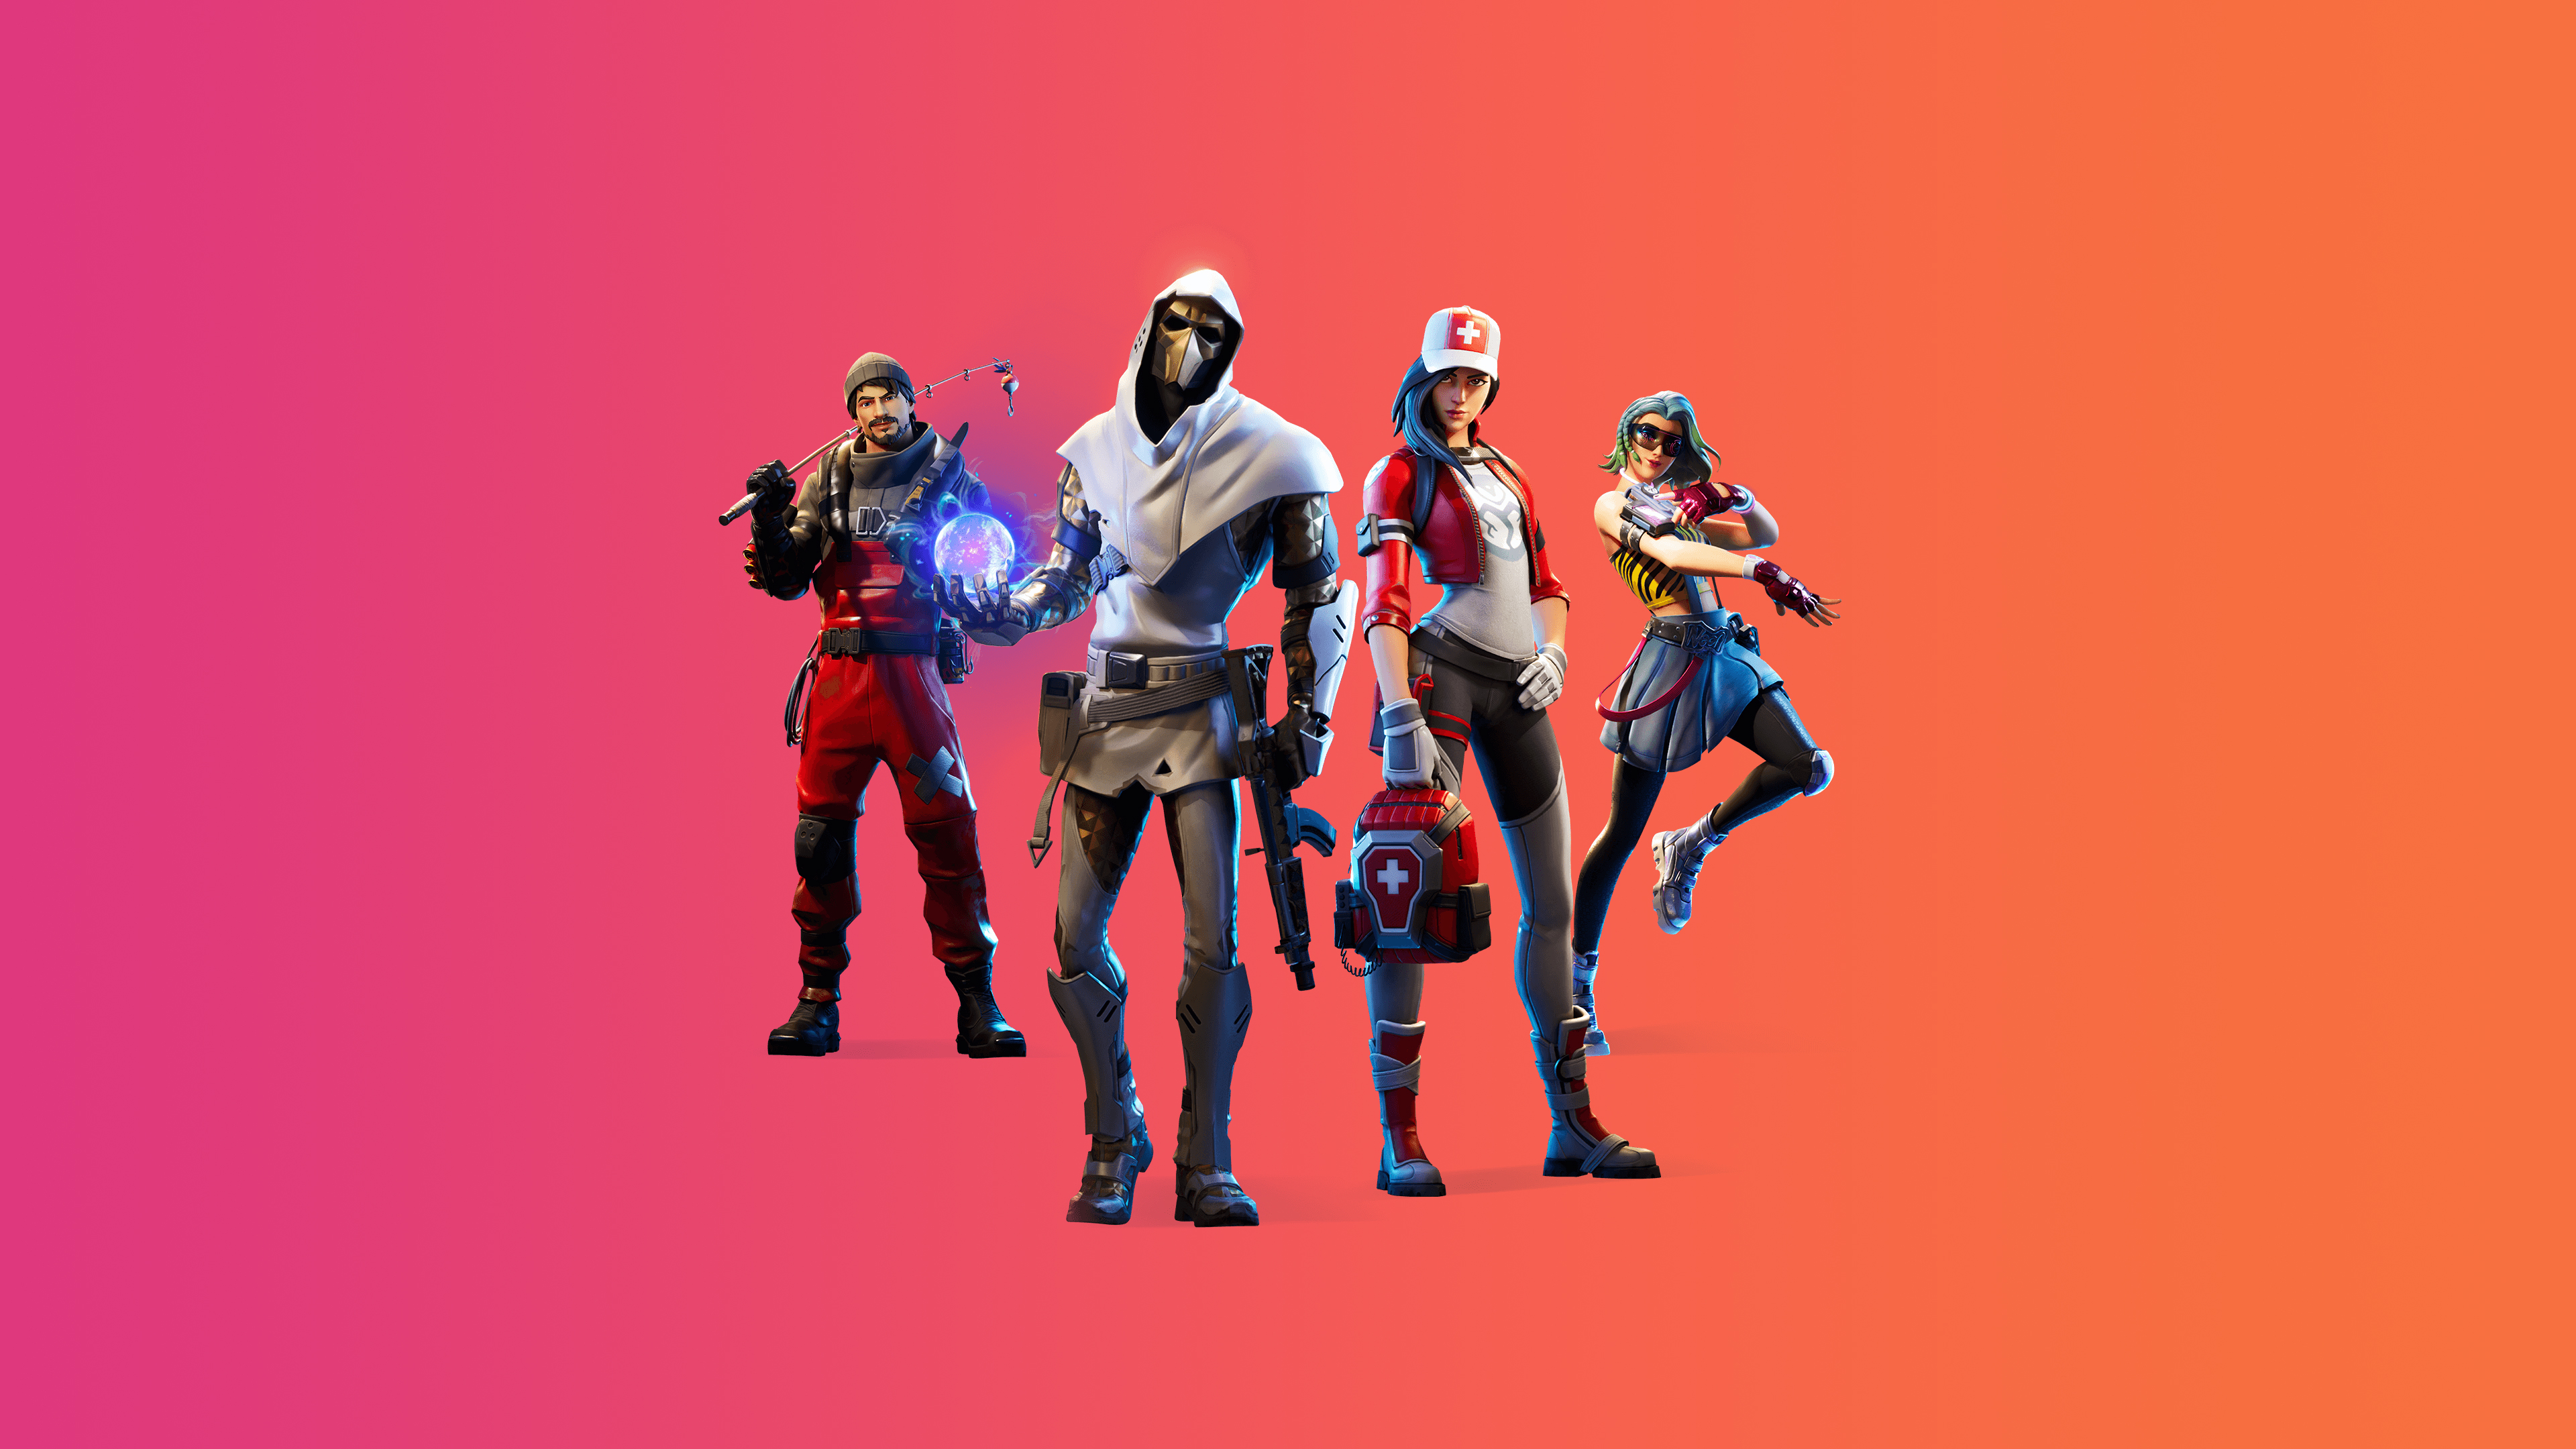 1440x900 4k Fortnite Chapter 2 Season 1 1440x900 Wallpaper Hd Games 4k Wallpapers Images Photos And Background